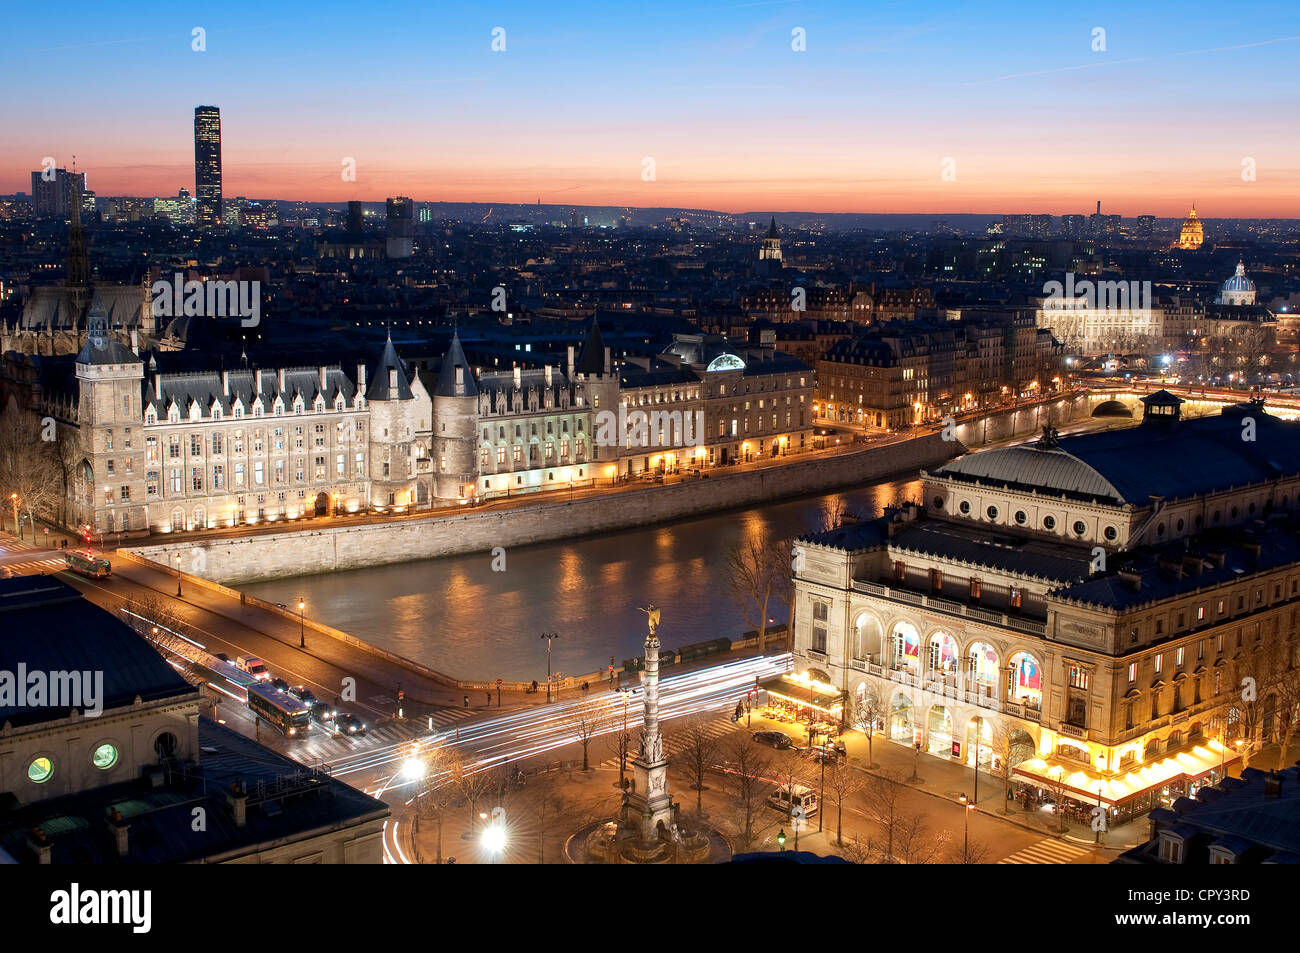 France Paris general view sunset with Conciergerie Châtelet square theatre on right banks of Seine listed as Word Stock Photo